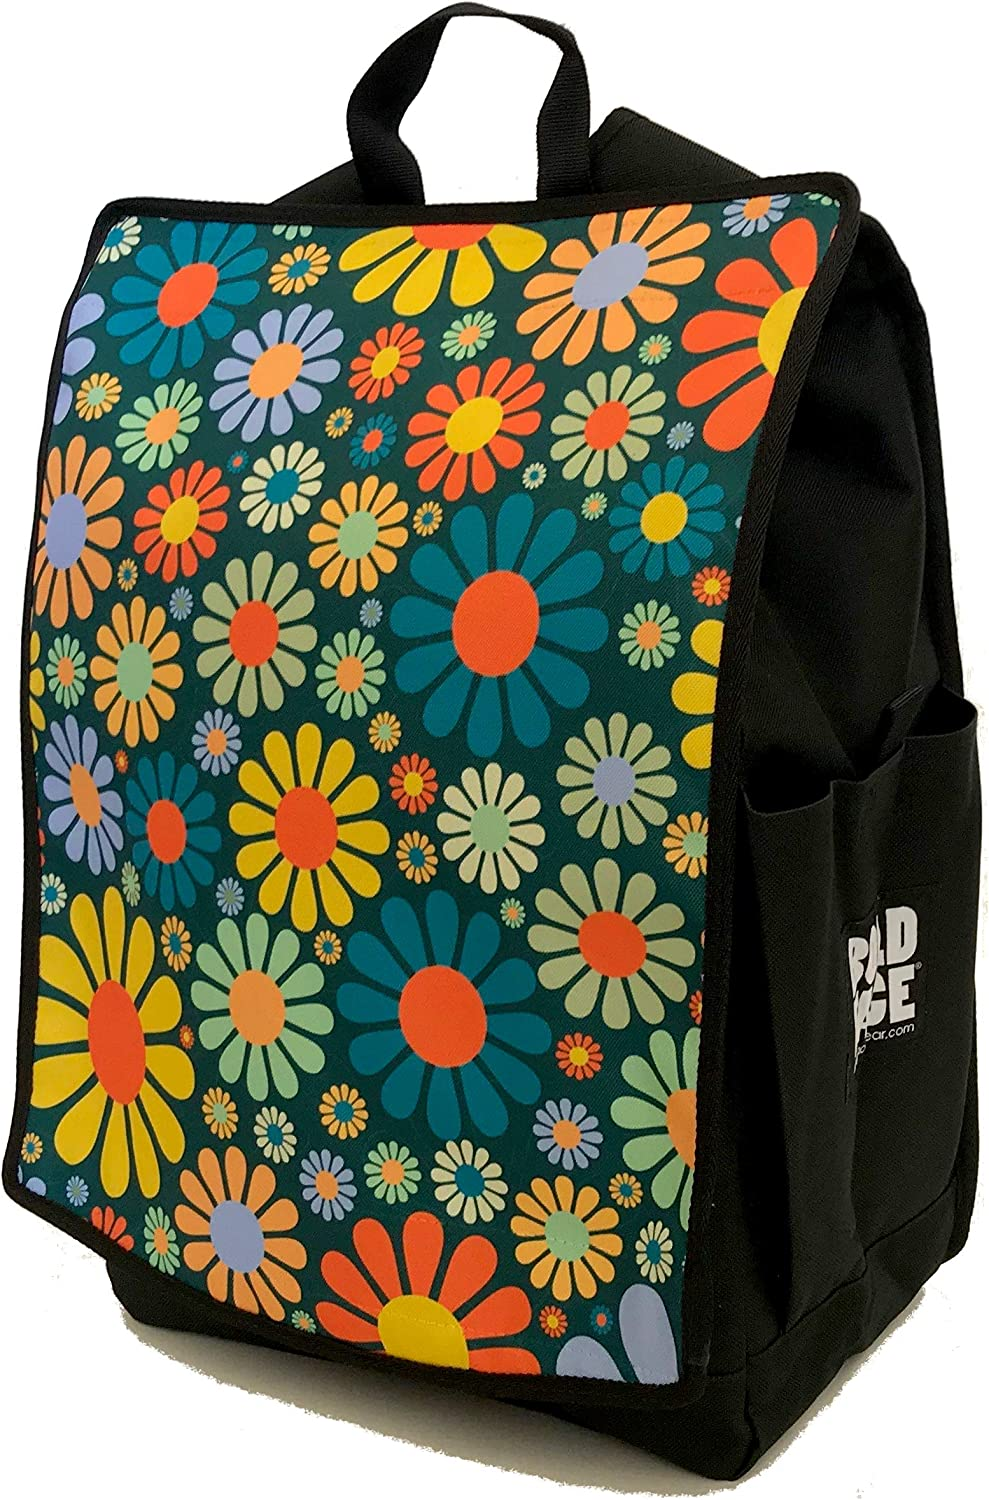 Groovy 60s Flower Power Backpack by BOLDFACE